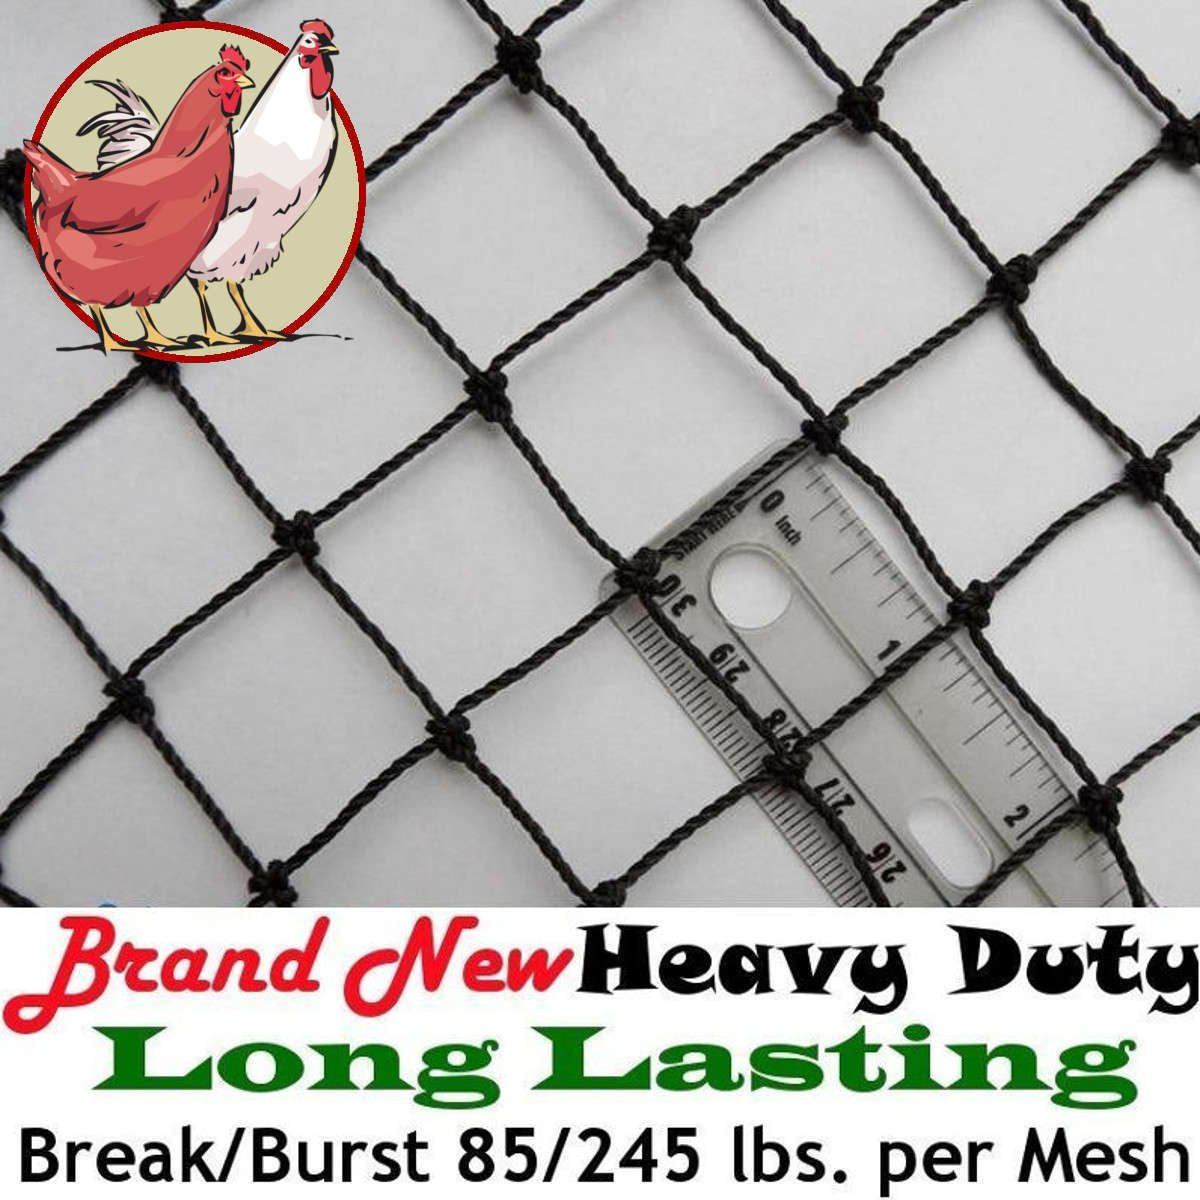 Poultry Netting 25' x 25' Heavy Knotted 1'' Mesh Nets Aviary Gamefowl Quail Chicken Bird Block Net Long Lasting Break/Burst 85/245 lb Polyethylene 8-10 Year Lifespan 17lb Ship Weight by Pinnon Hatch Farms